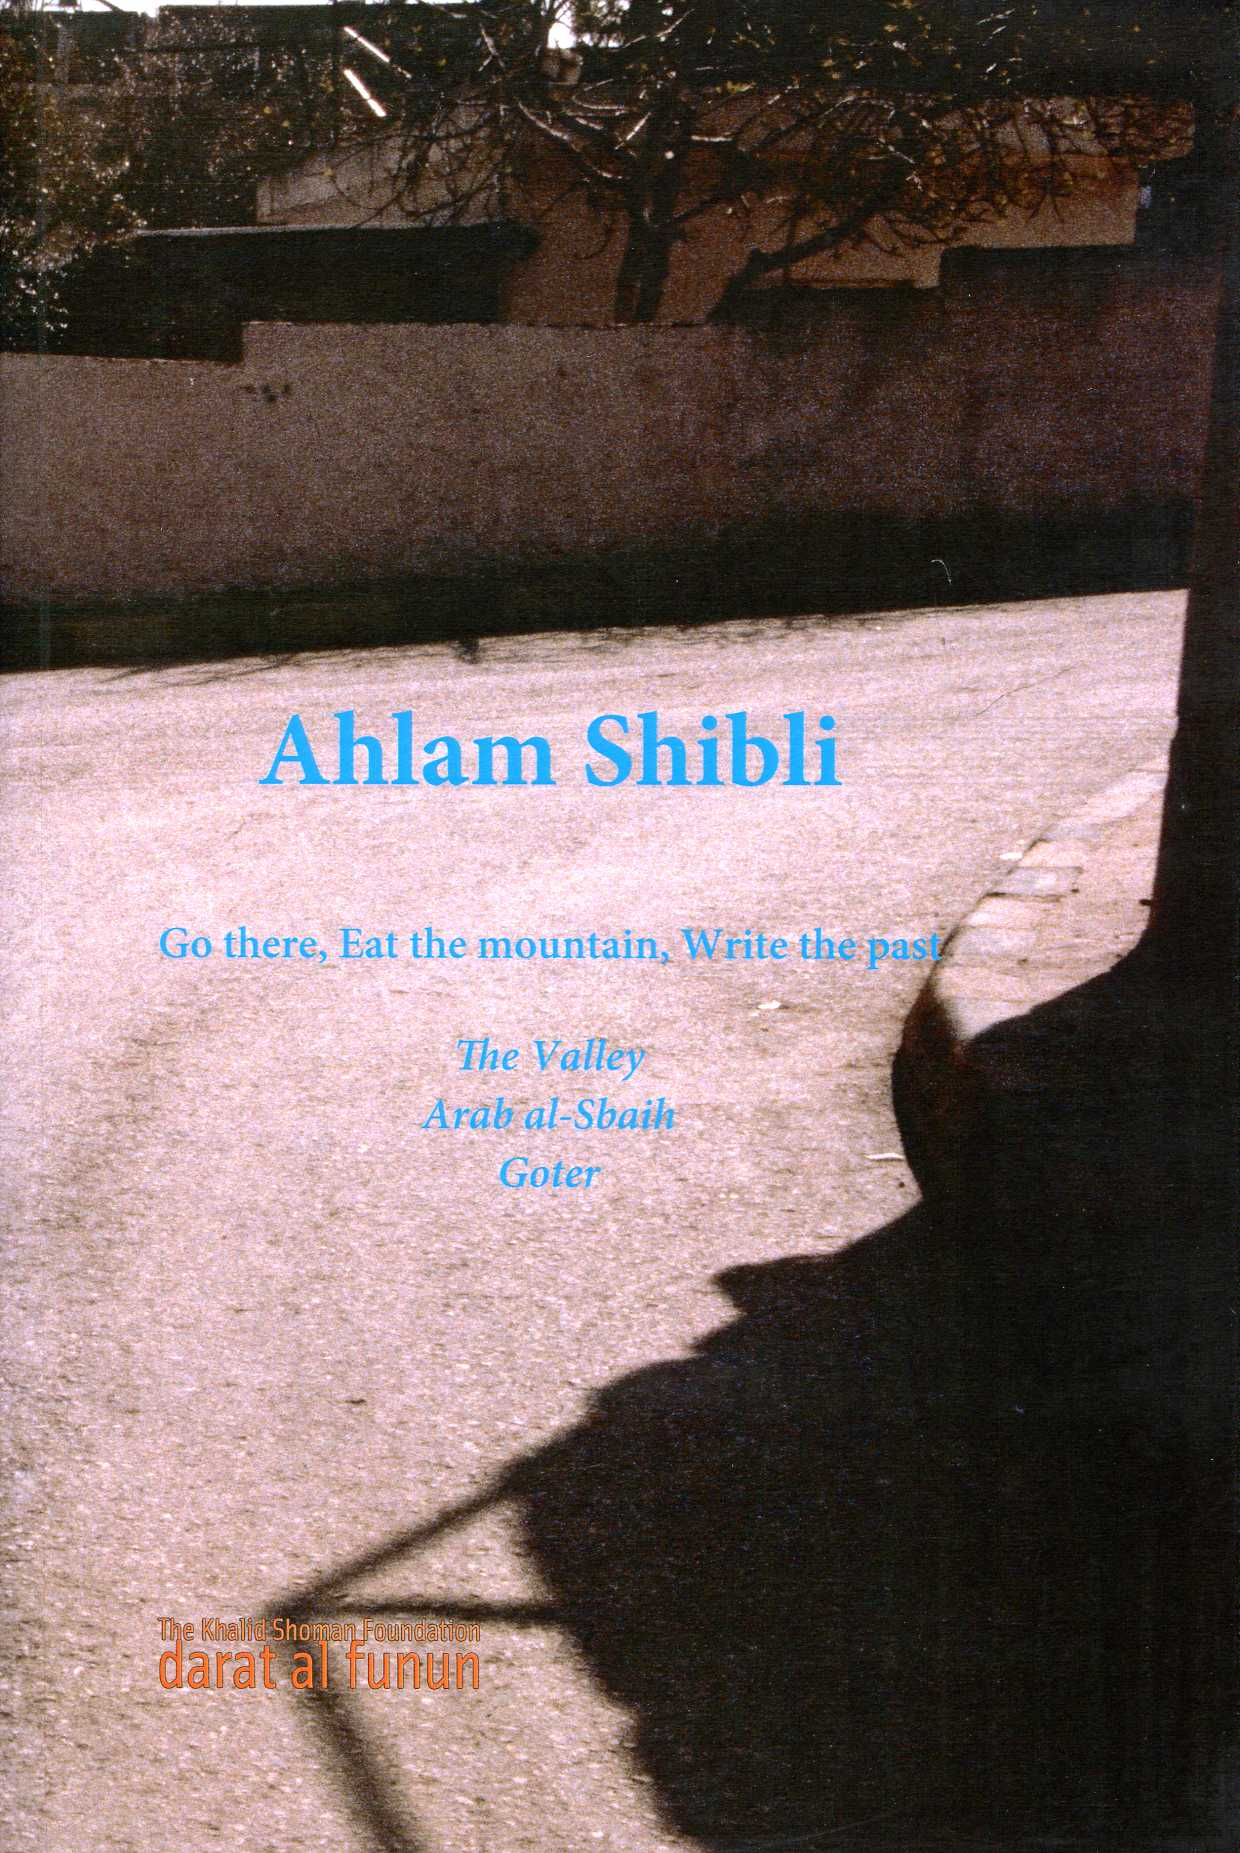 AHLAM SHIBLI GO THERE, EAT THE MOUNTAIN, WRITE THE PAST